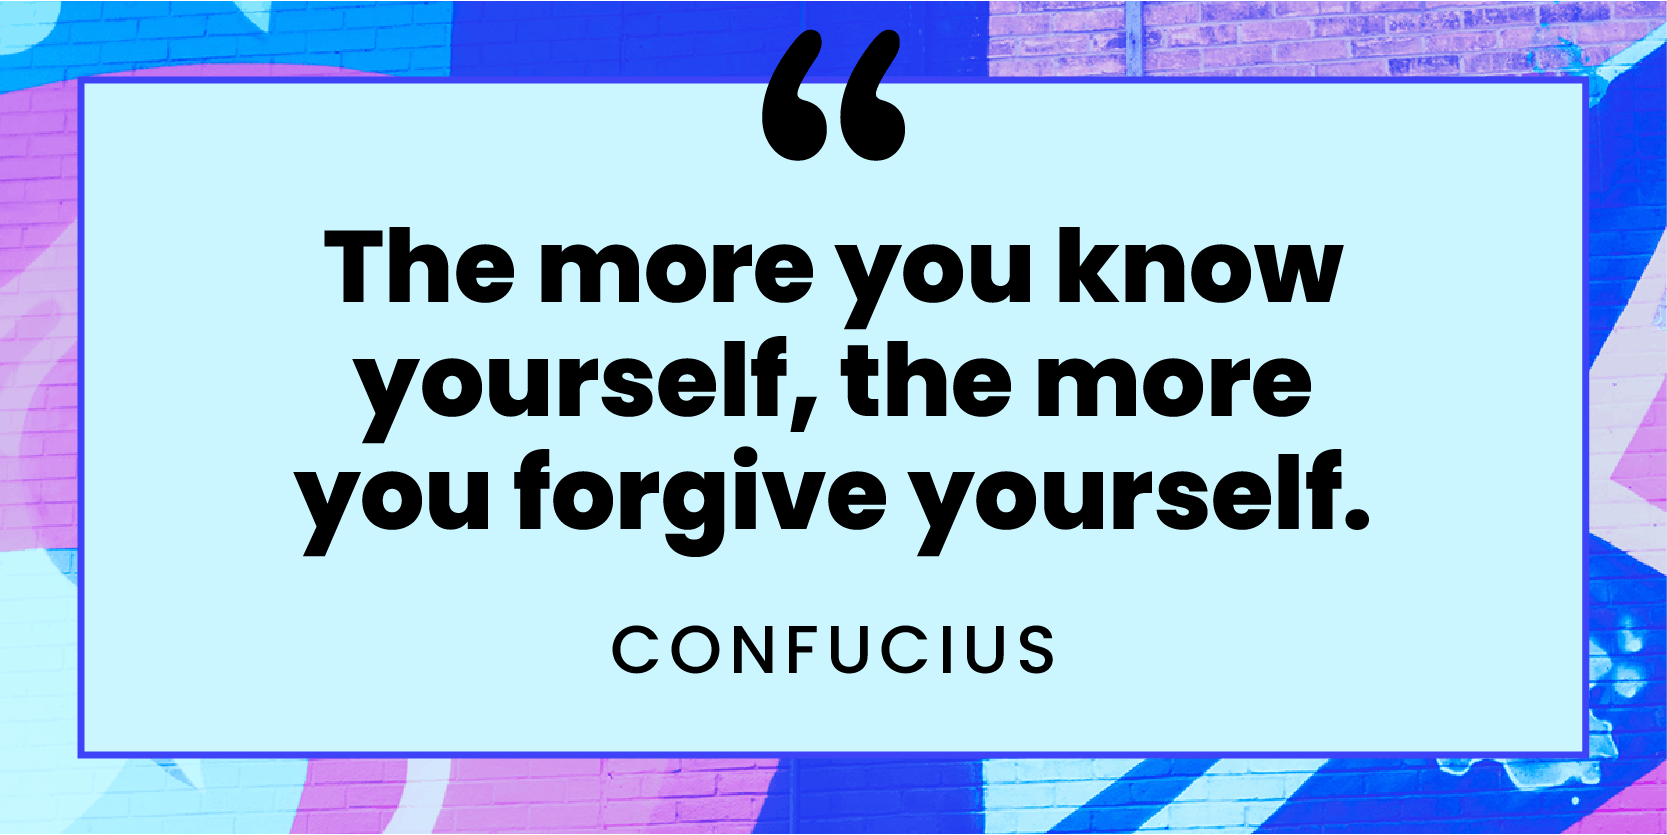 """The more you know yourself, the more you forgive yourself."" quote by Confucius"